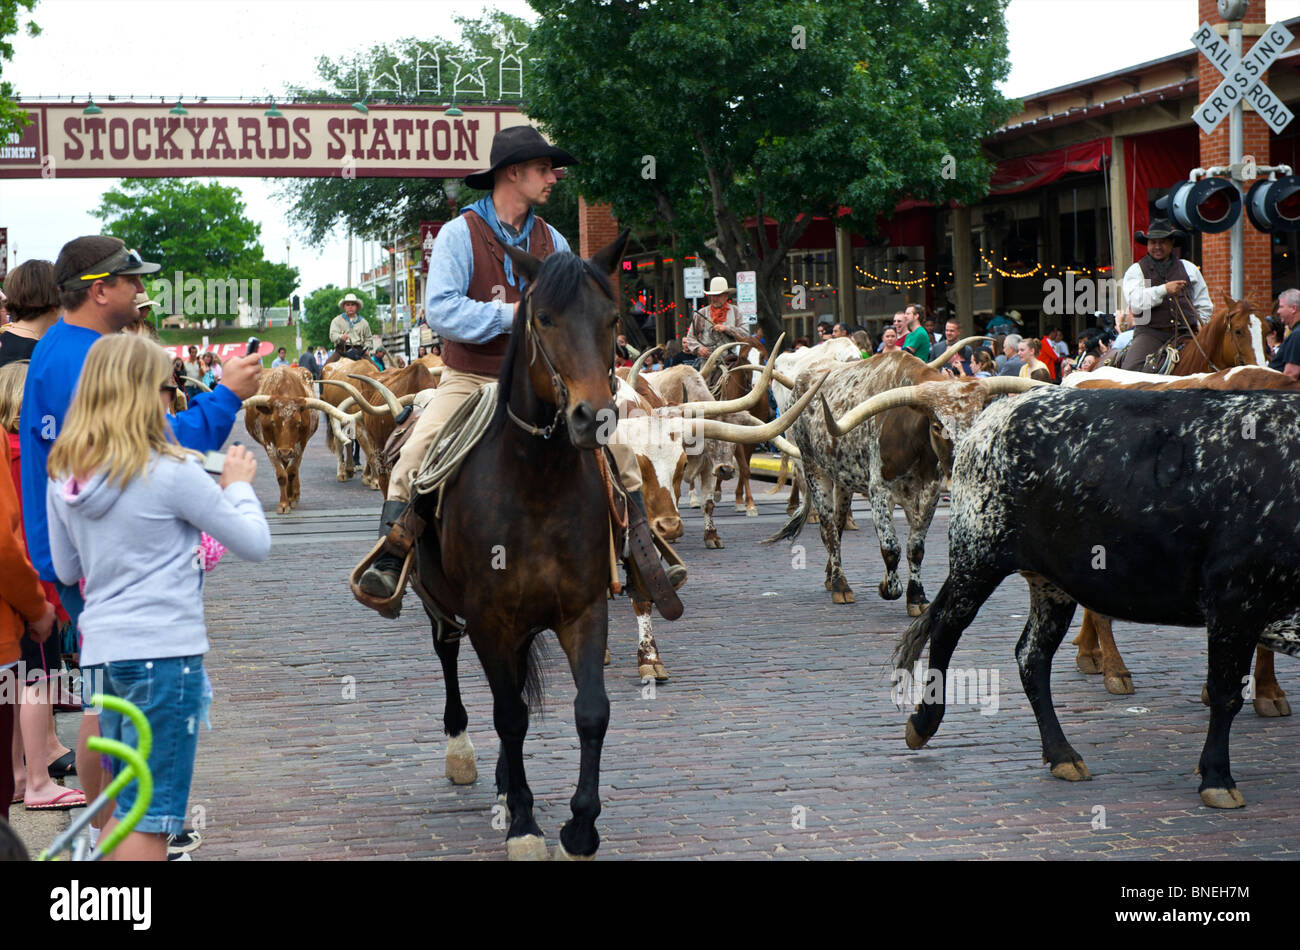 Longhorns and cowboys walking on the street at Stockyards station in Fort Worth, Texas, USA Stock Photo